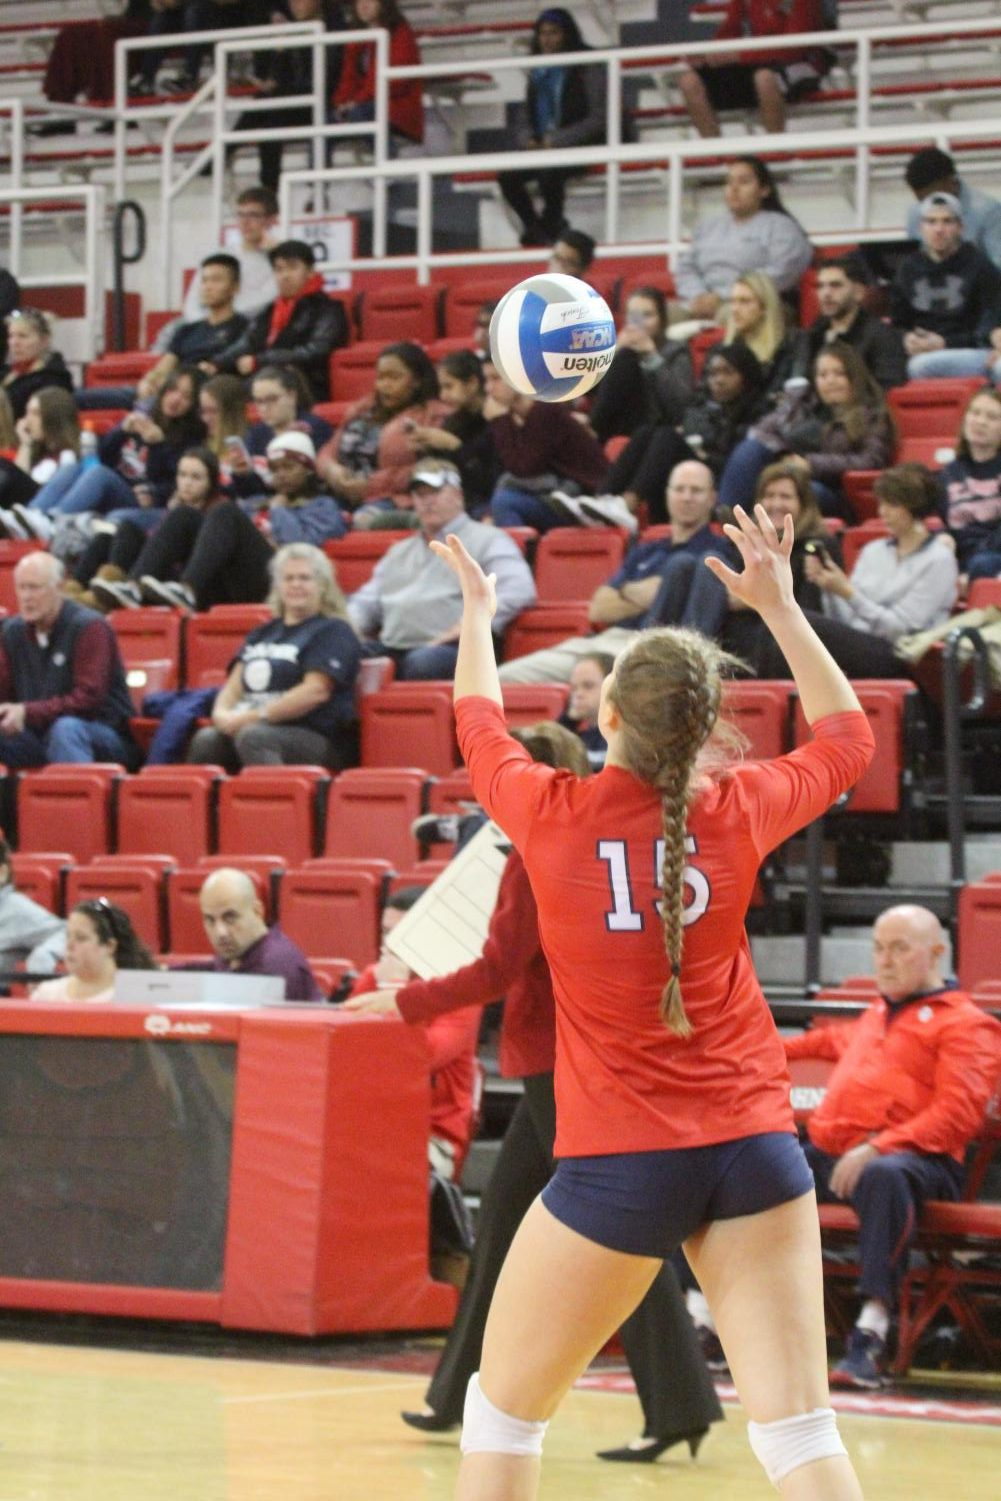 Kayley Wood has been a vital part of the volleyball team's early season success at SJU.